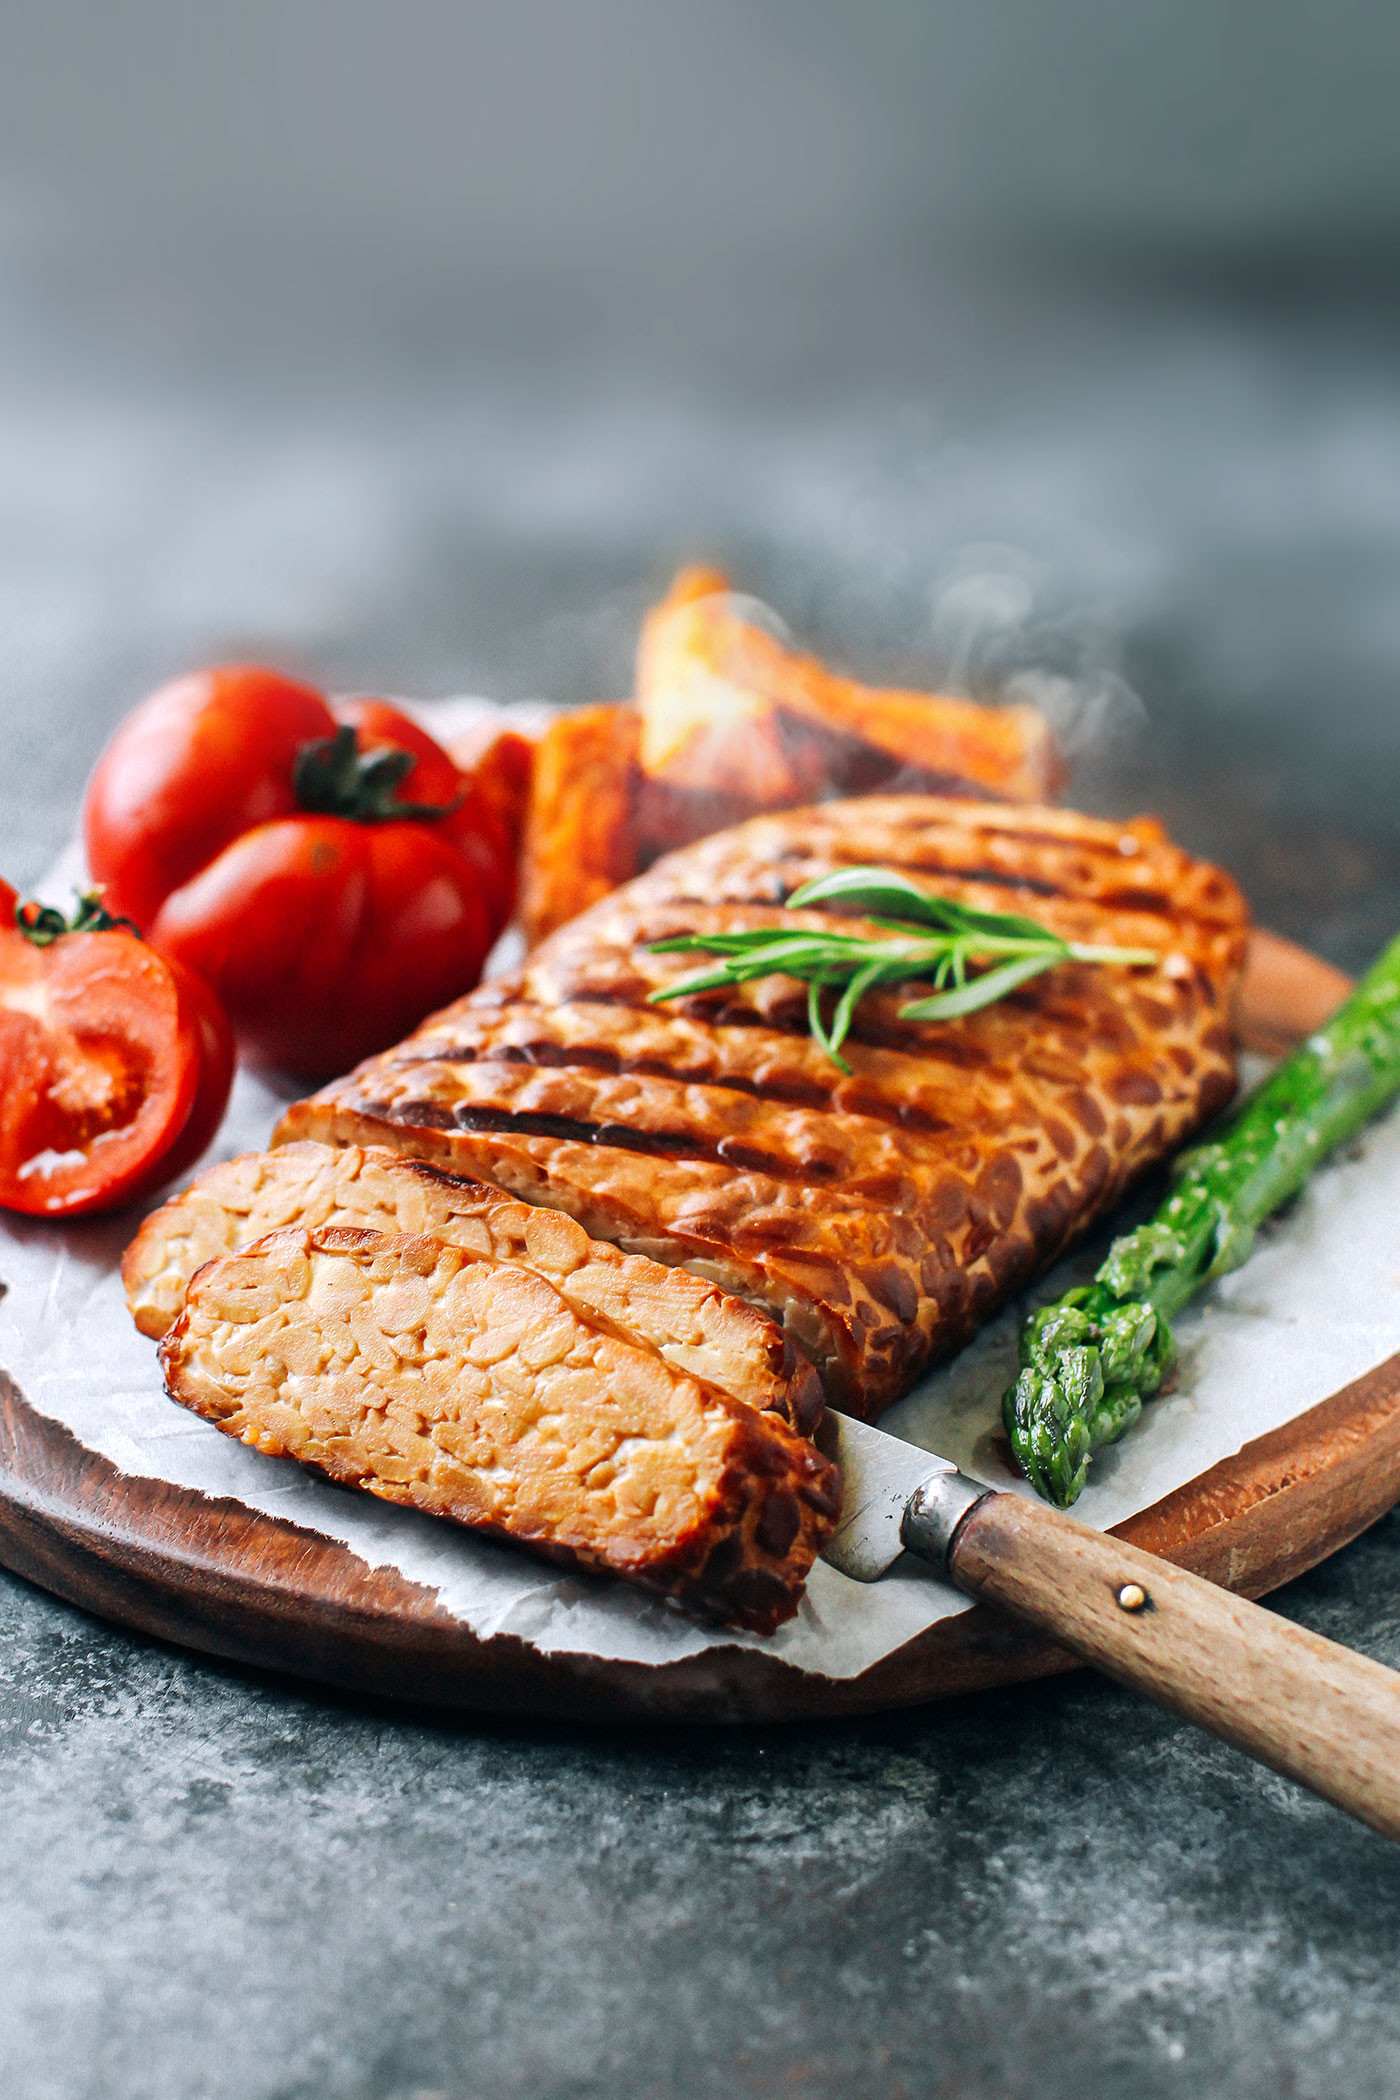 Recipes Using Tempeh  Smoked & Grilled Tempeh Full of Plants